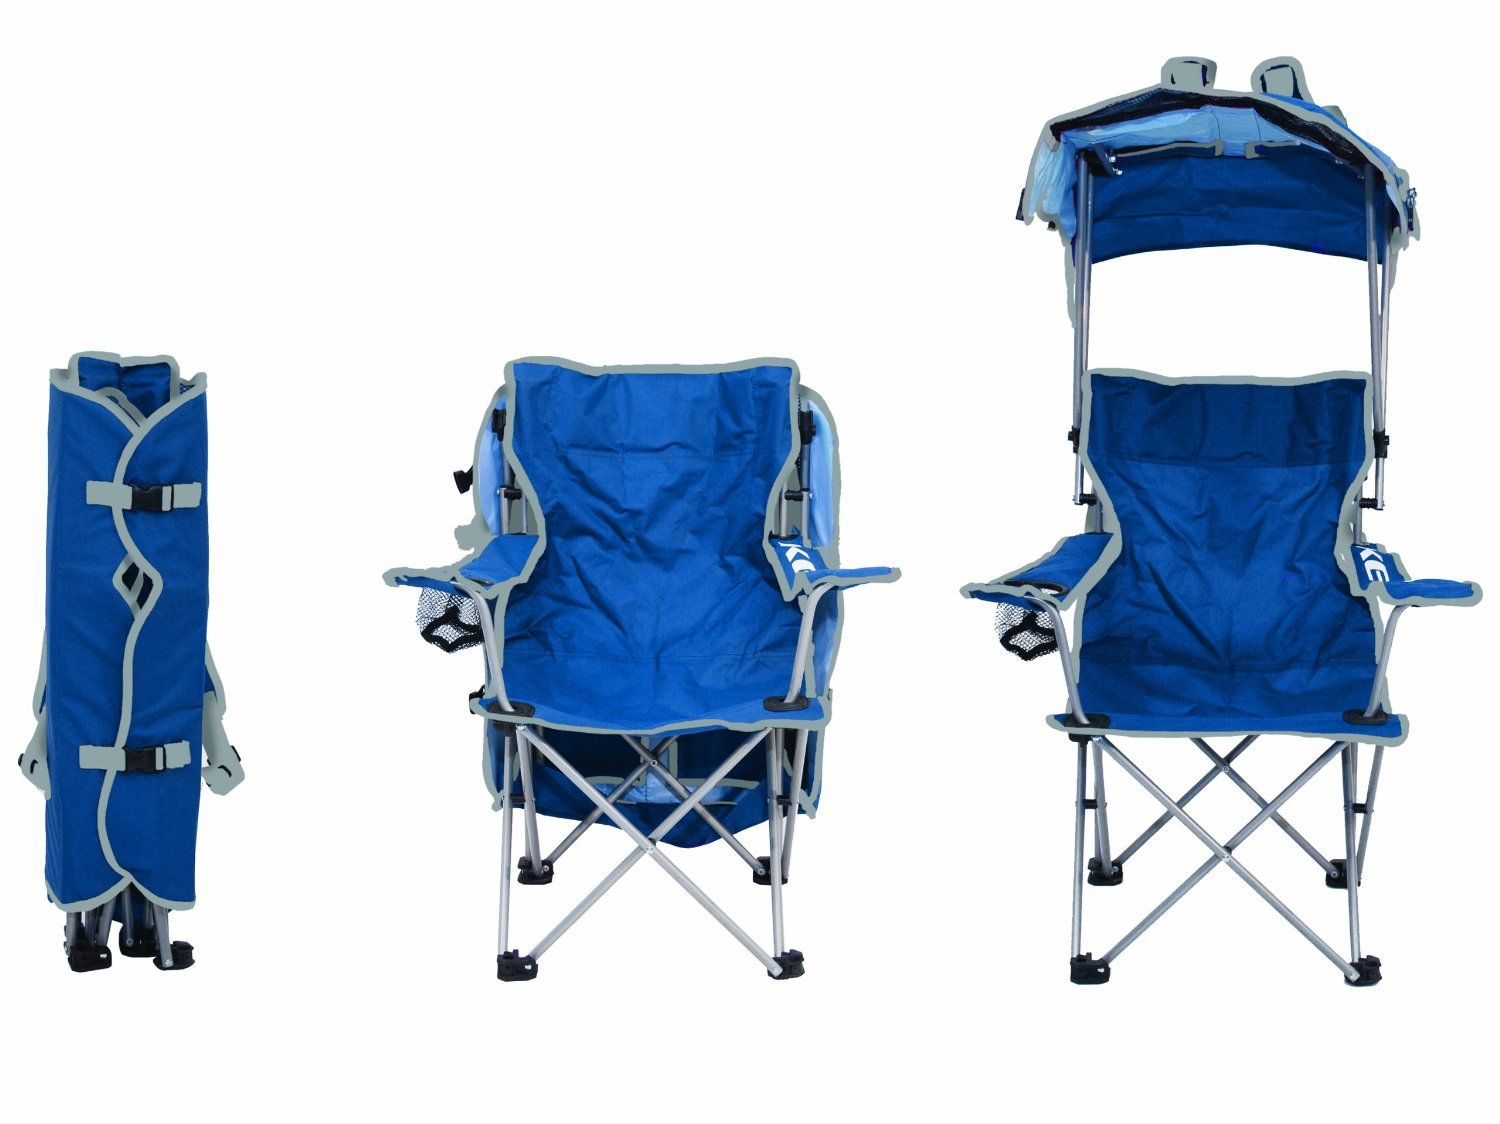 Toddler Camping Chair Kids canopy, Canopy, Patio canopy